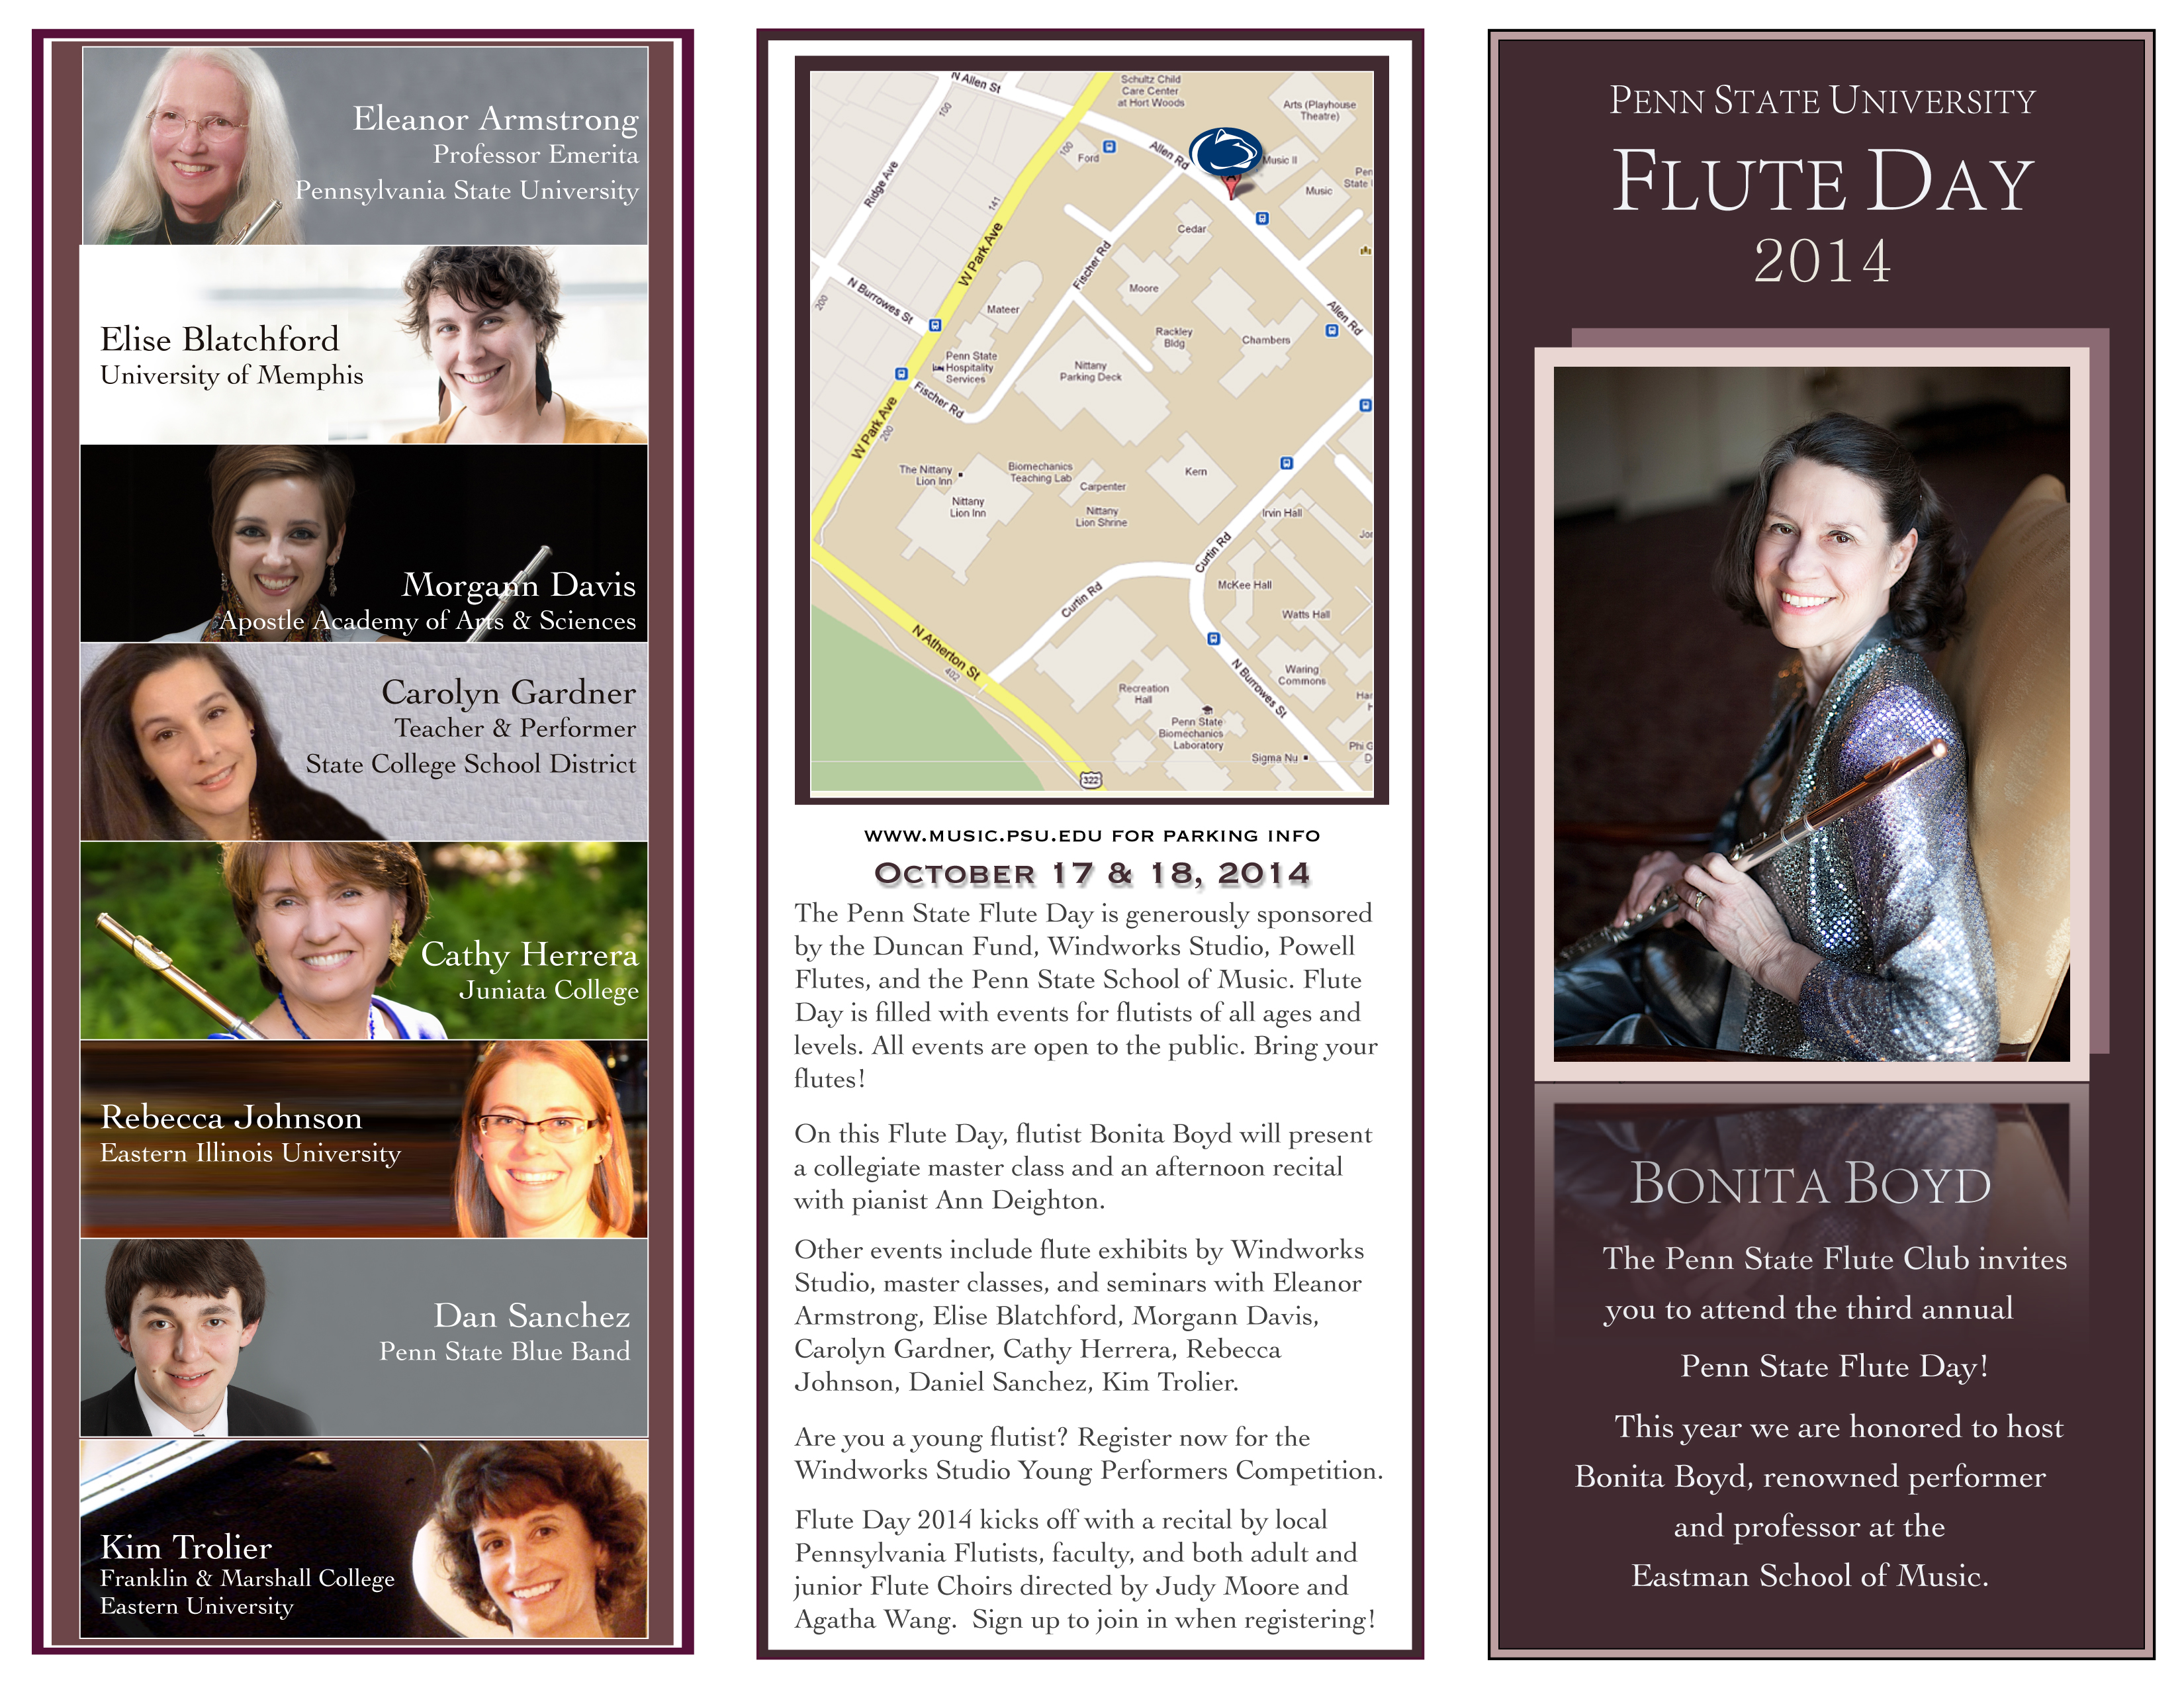 flute day brochure #1